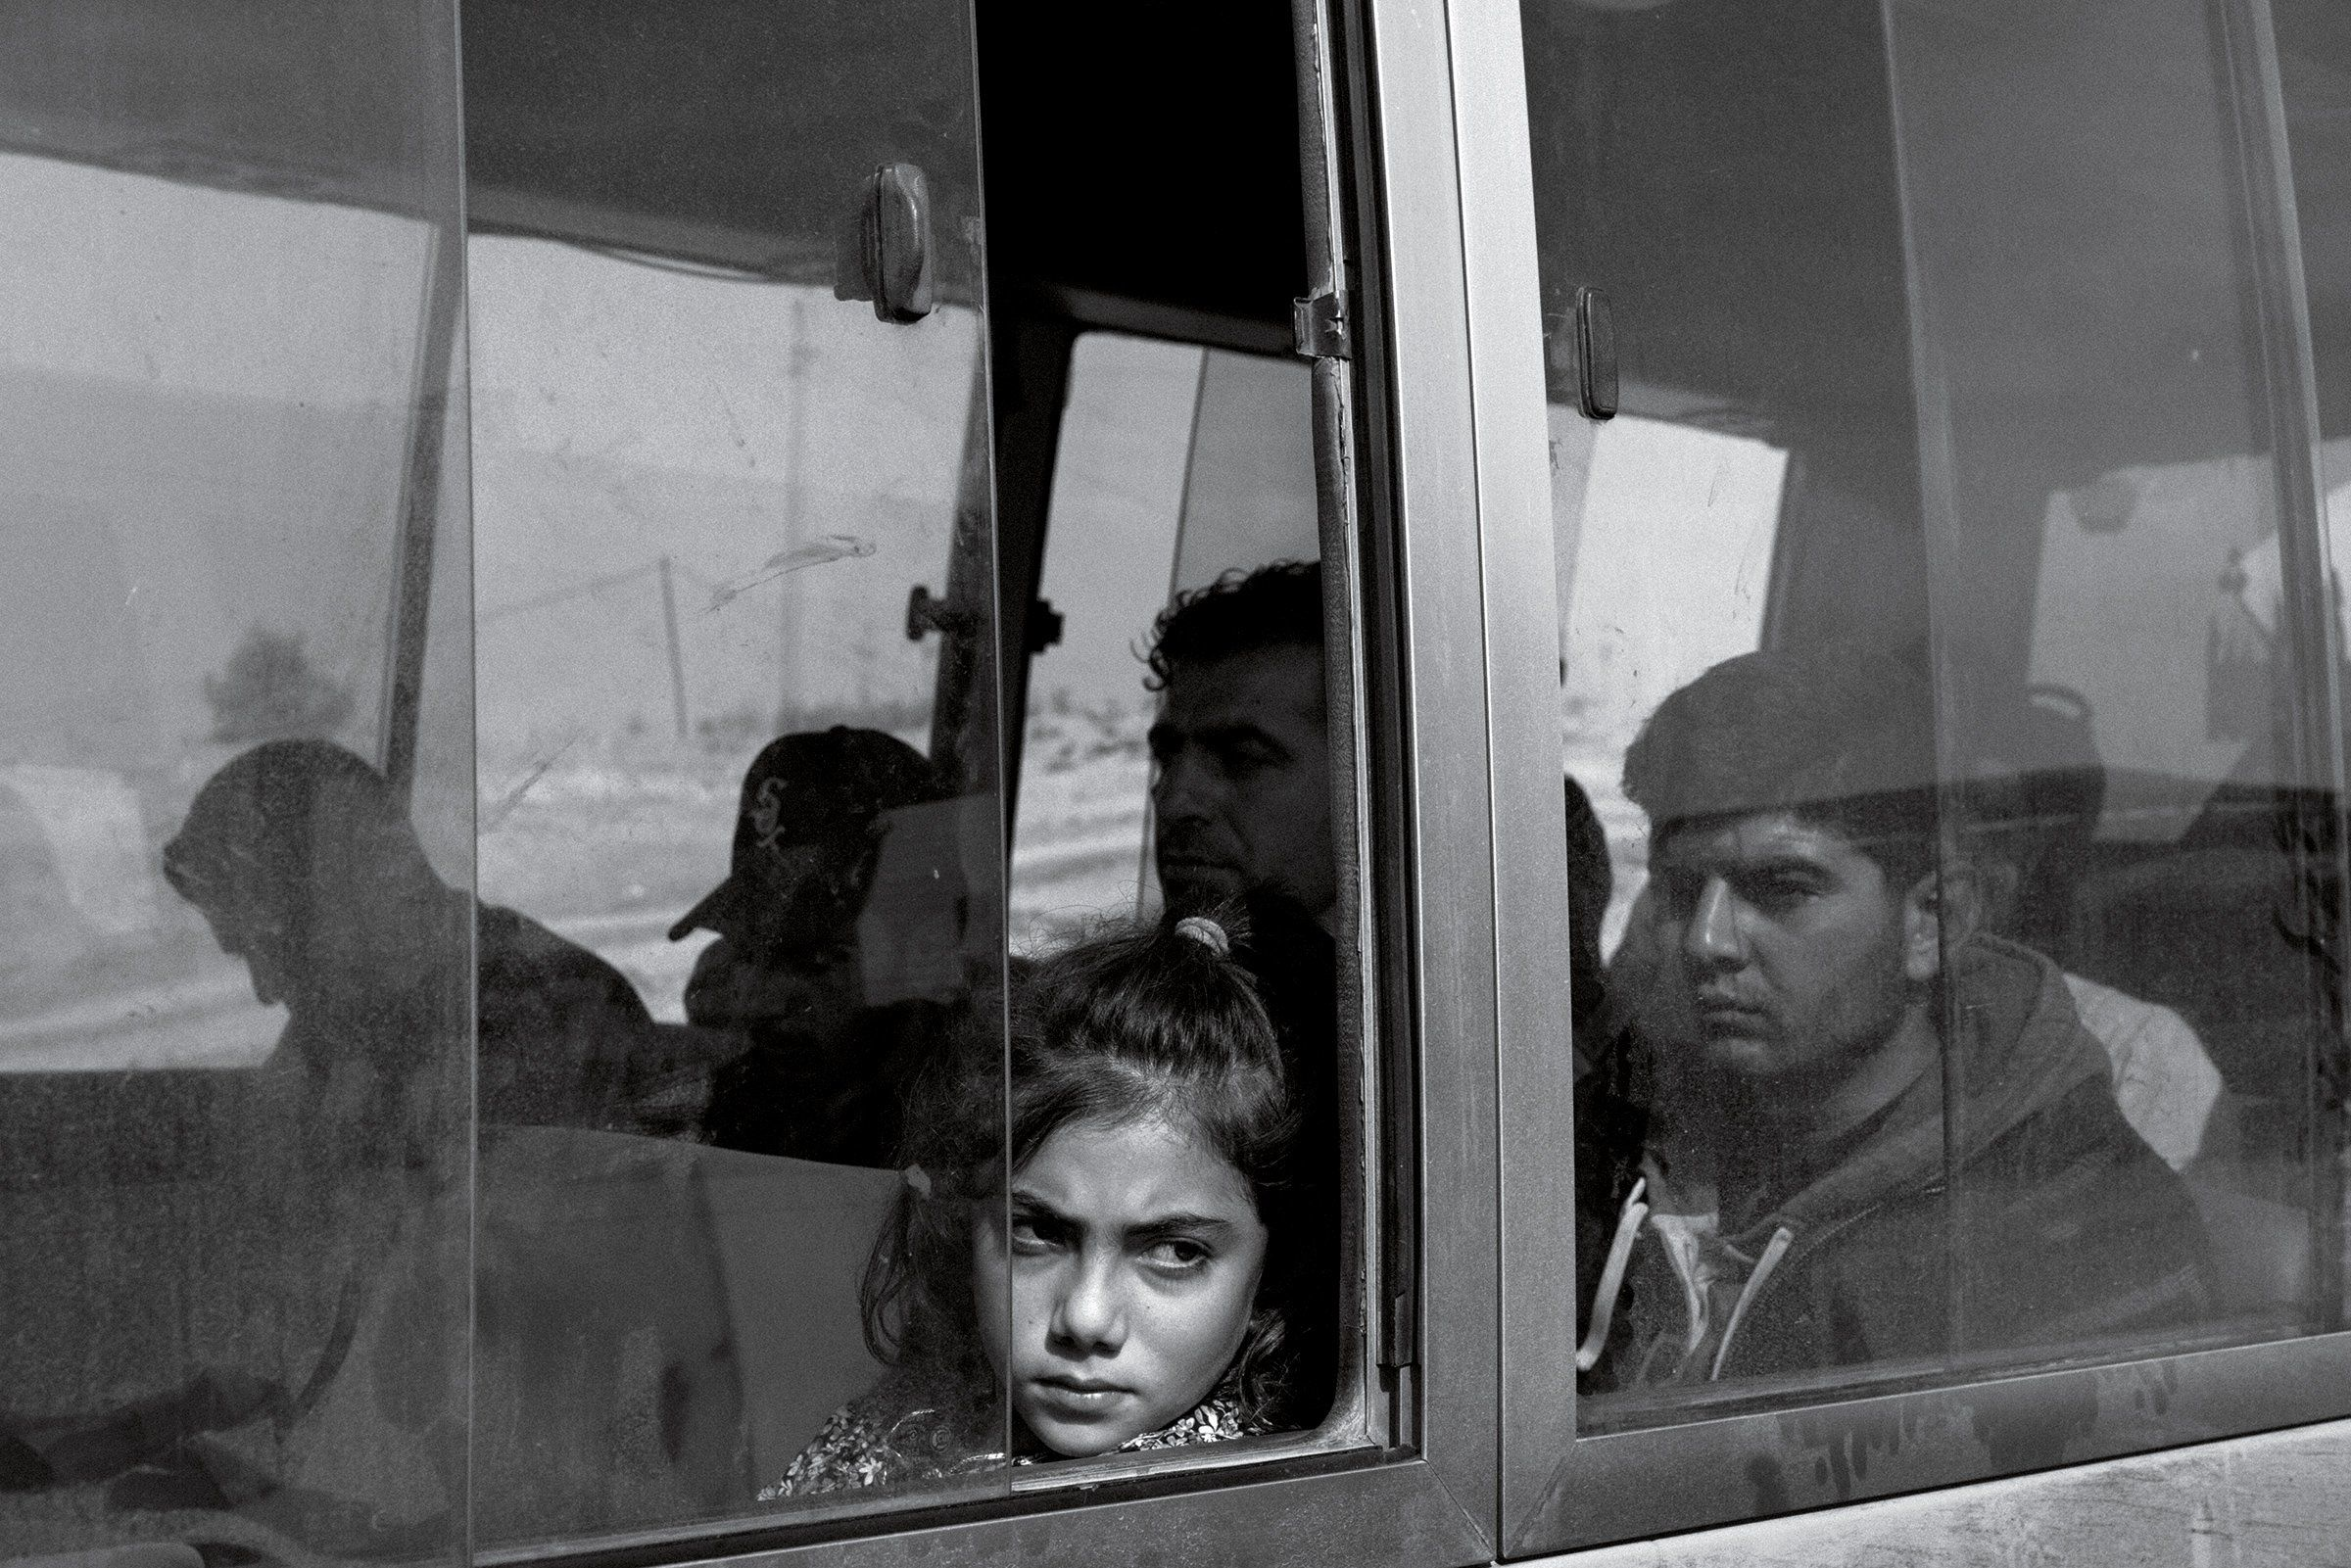 Nuhat Abdul Hamid, 9, from the Syrian Kurdish town of Darbasiyah, aboard a bus transporting refugees to the Bardarash camp in Iraq on Nov. 1.